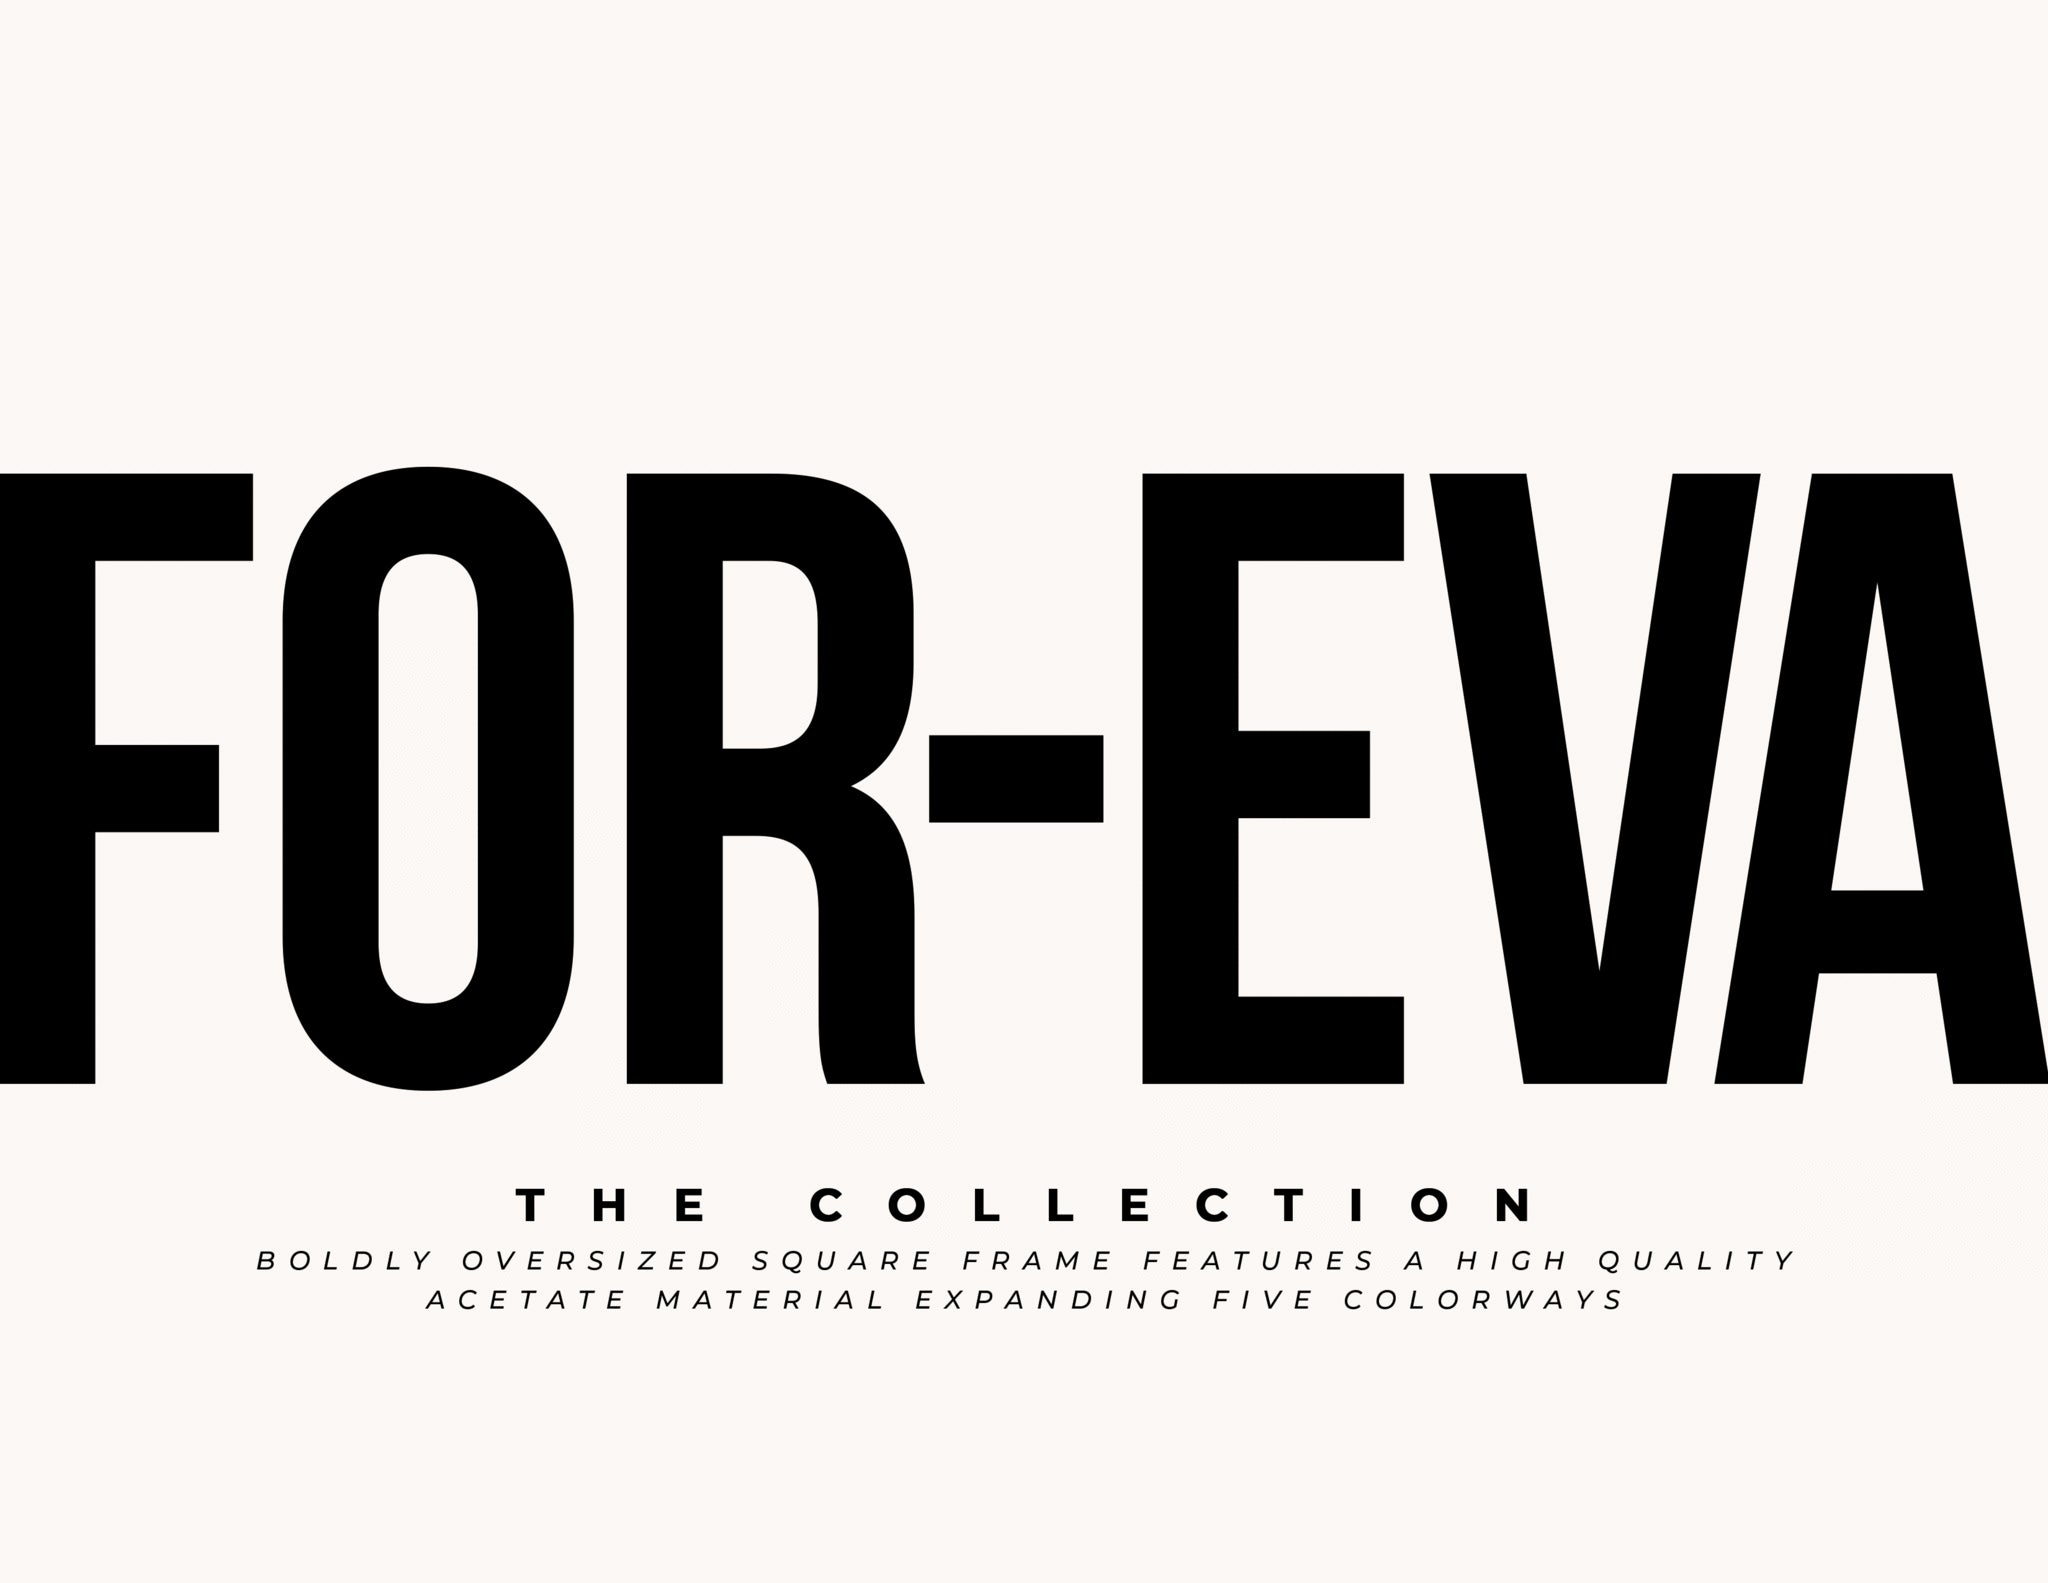 FOR-EVA collection